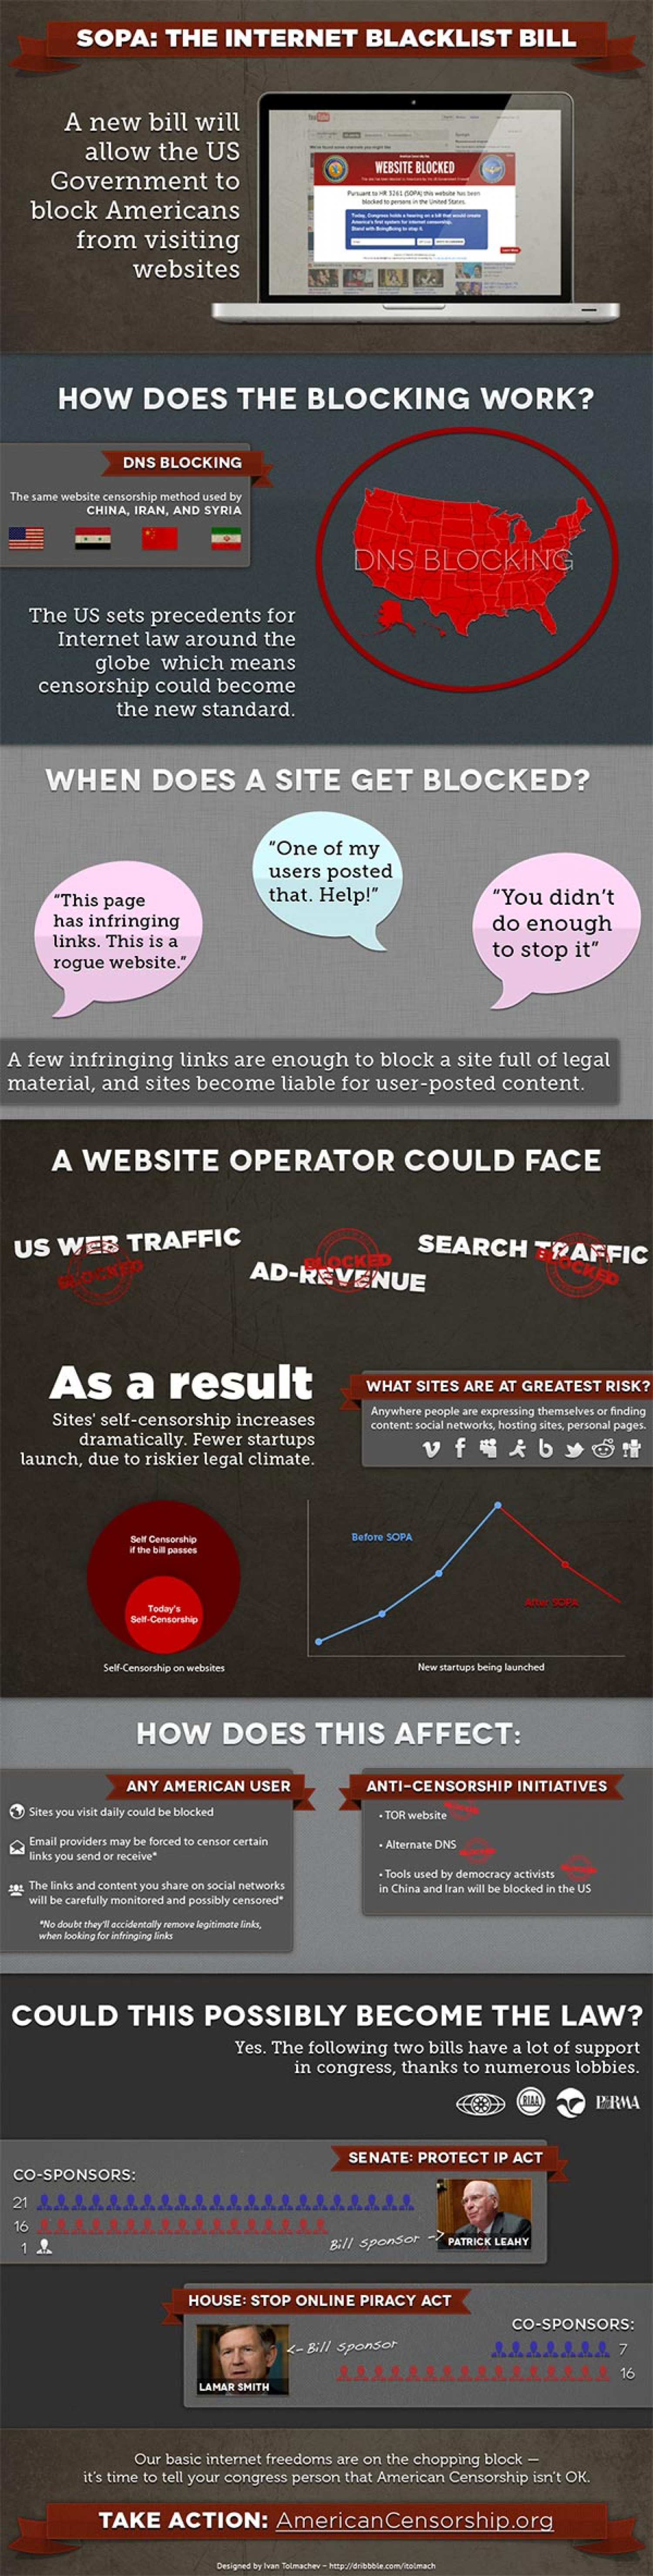 Sopa: The Internet Blacklist Bill Infographic